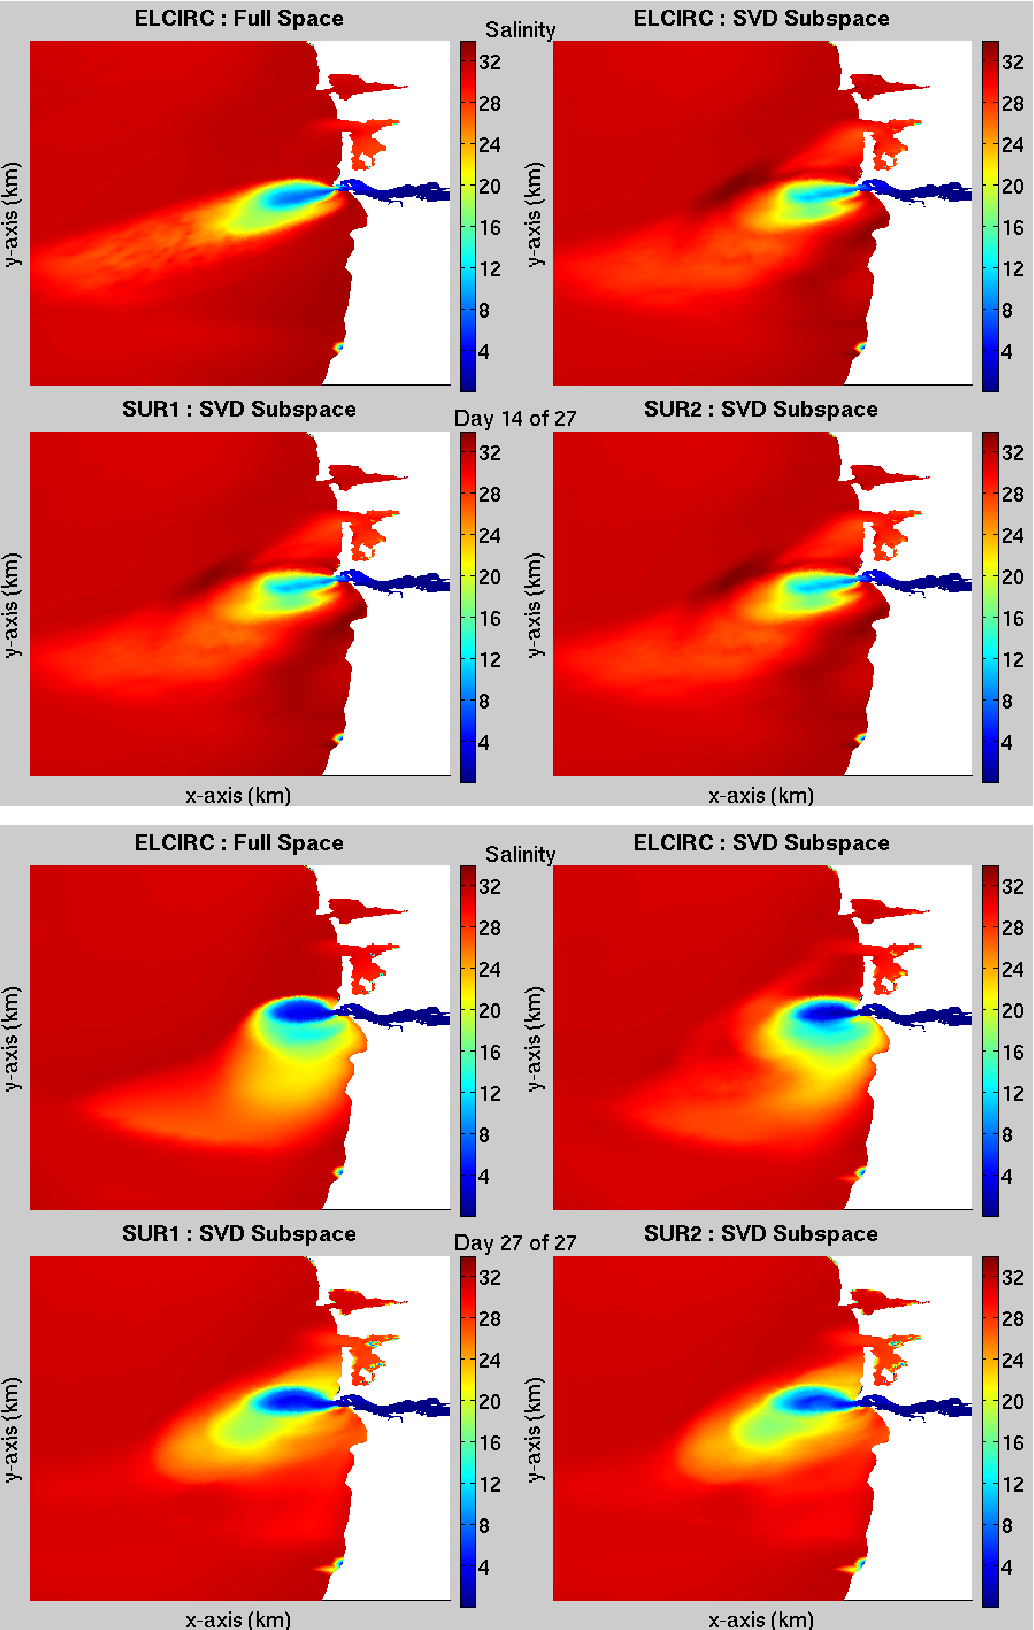 Fast Neural Network Surrogates For Very High Dimensional Physics Axis Gaul Based Models In Computational Oceanography Semantic Scholar